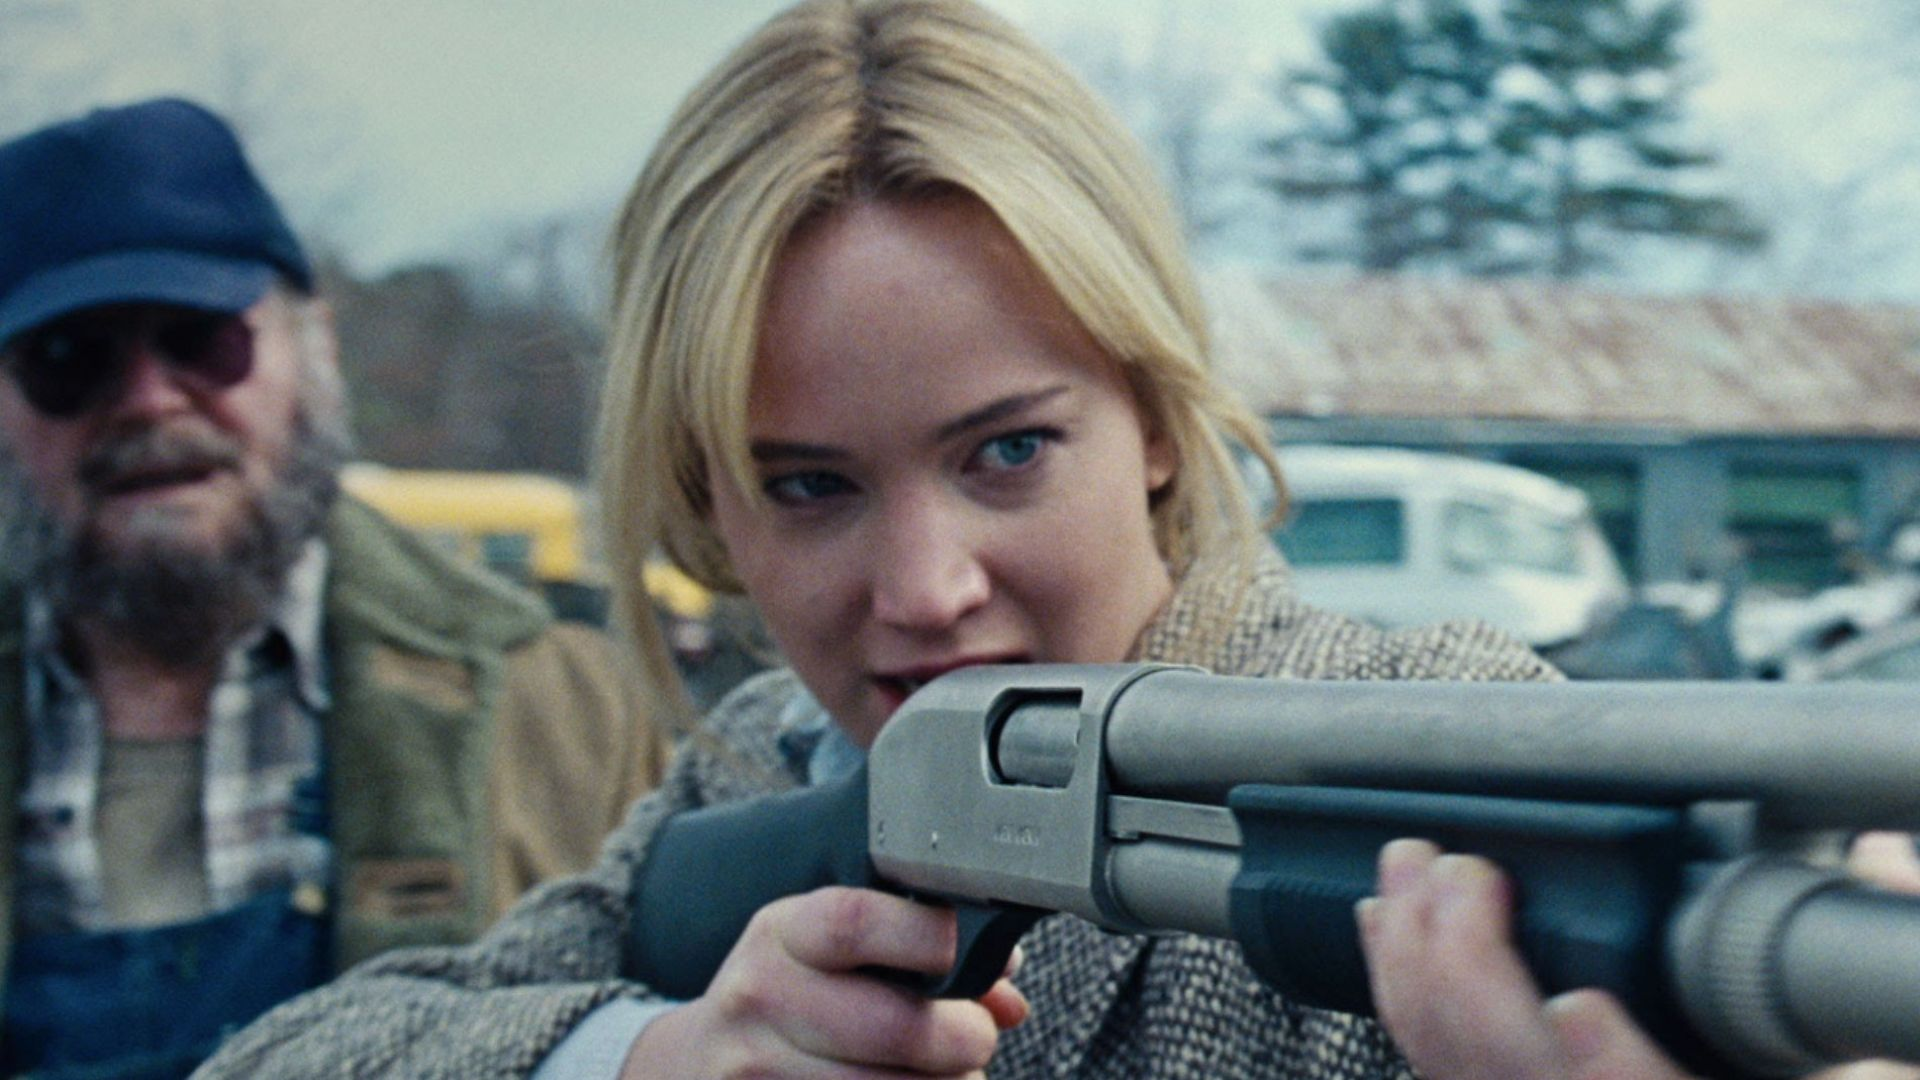 Jennifer Lawrence Stars in First Trailer for New Comedy 'Joy